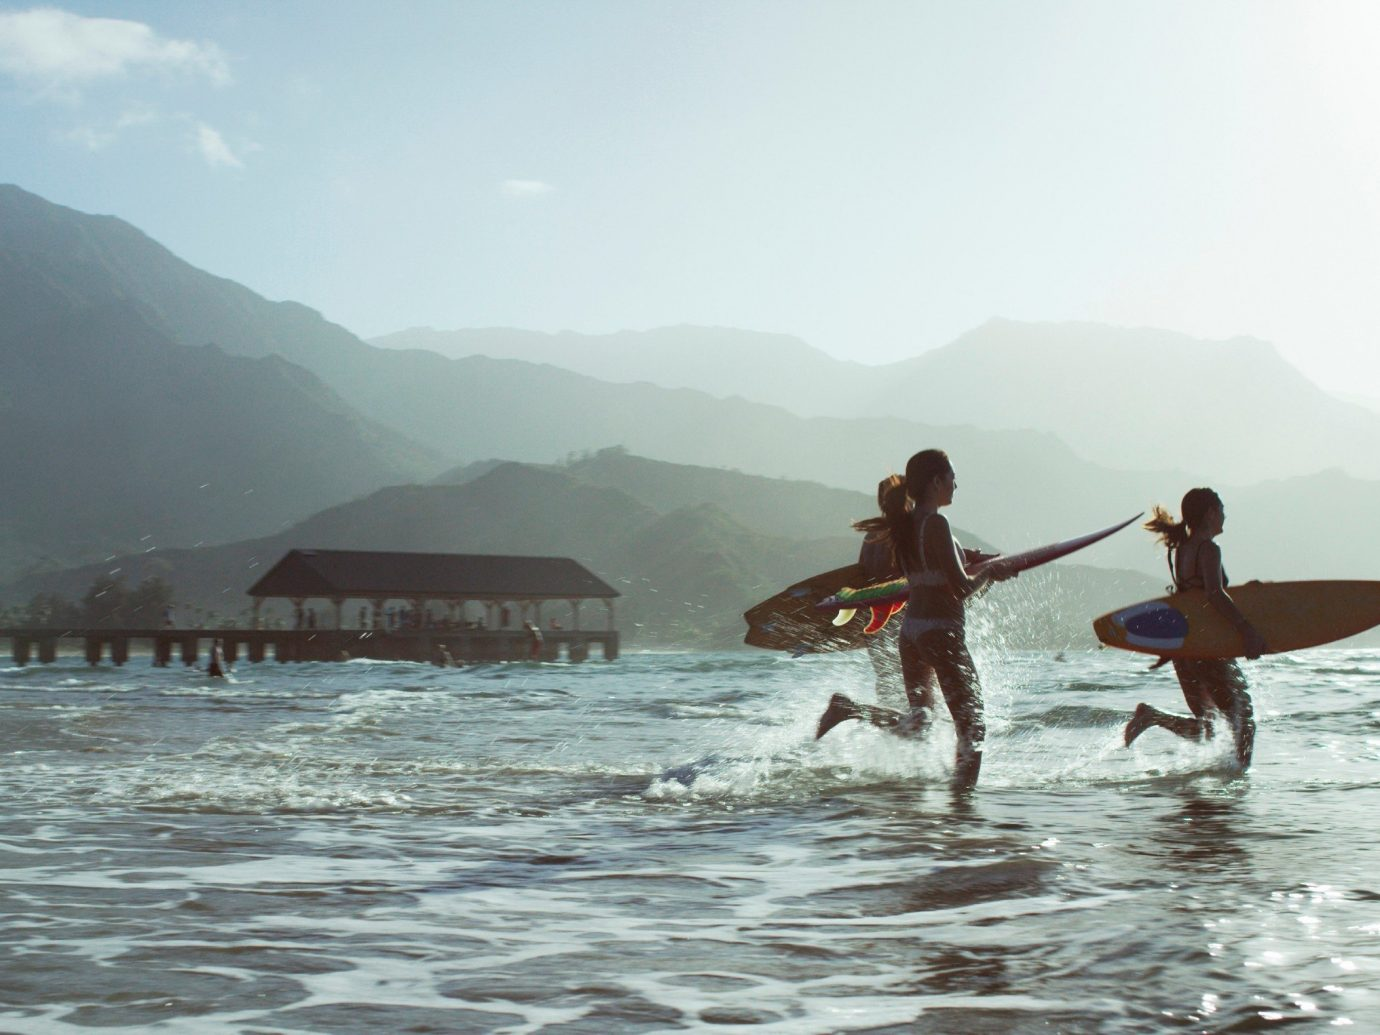 Trip Ideas outdoor water sky mountain surfing man Sea water sport wind wave wave Ocean vacation Sport Coast boating sports Beach surfing equipment and supplies paddle